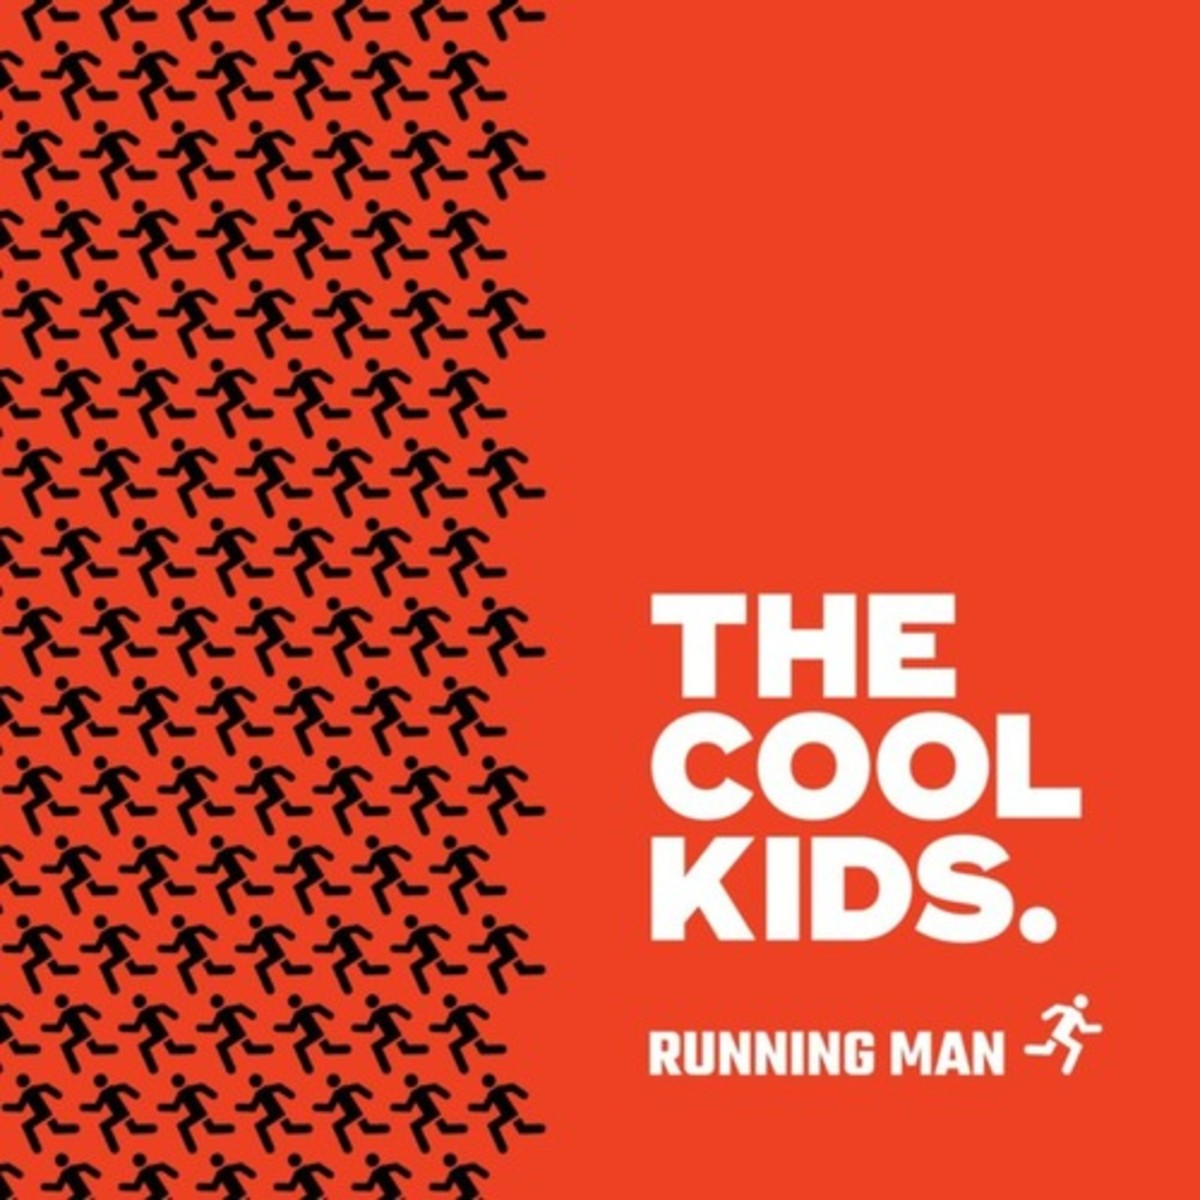 cool-kids-running-man.jpg